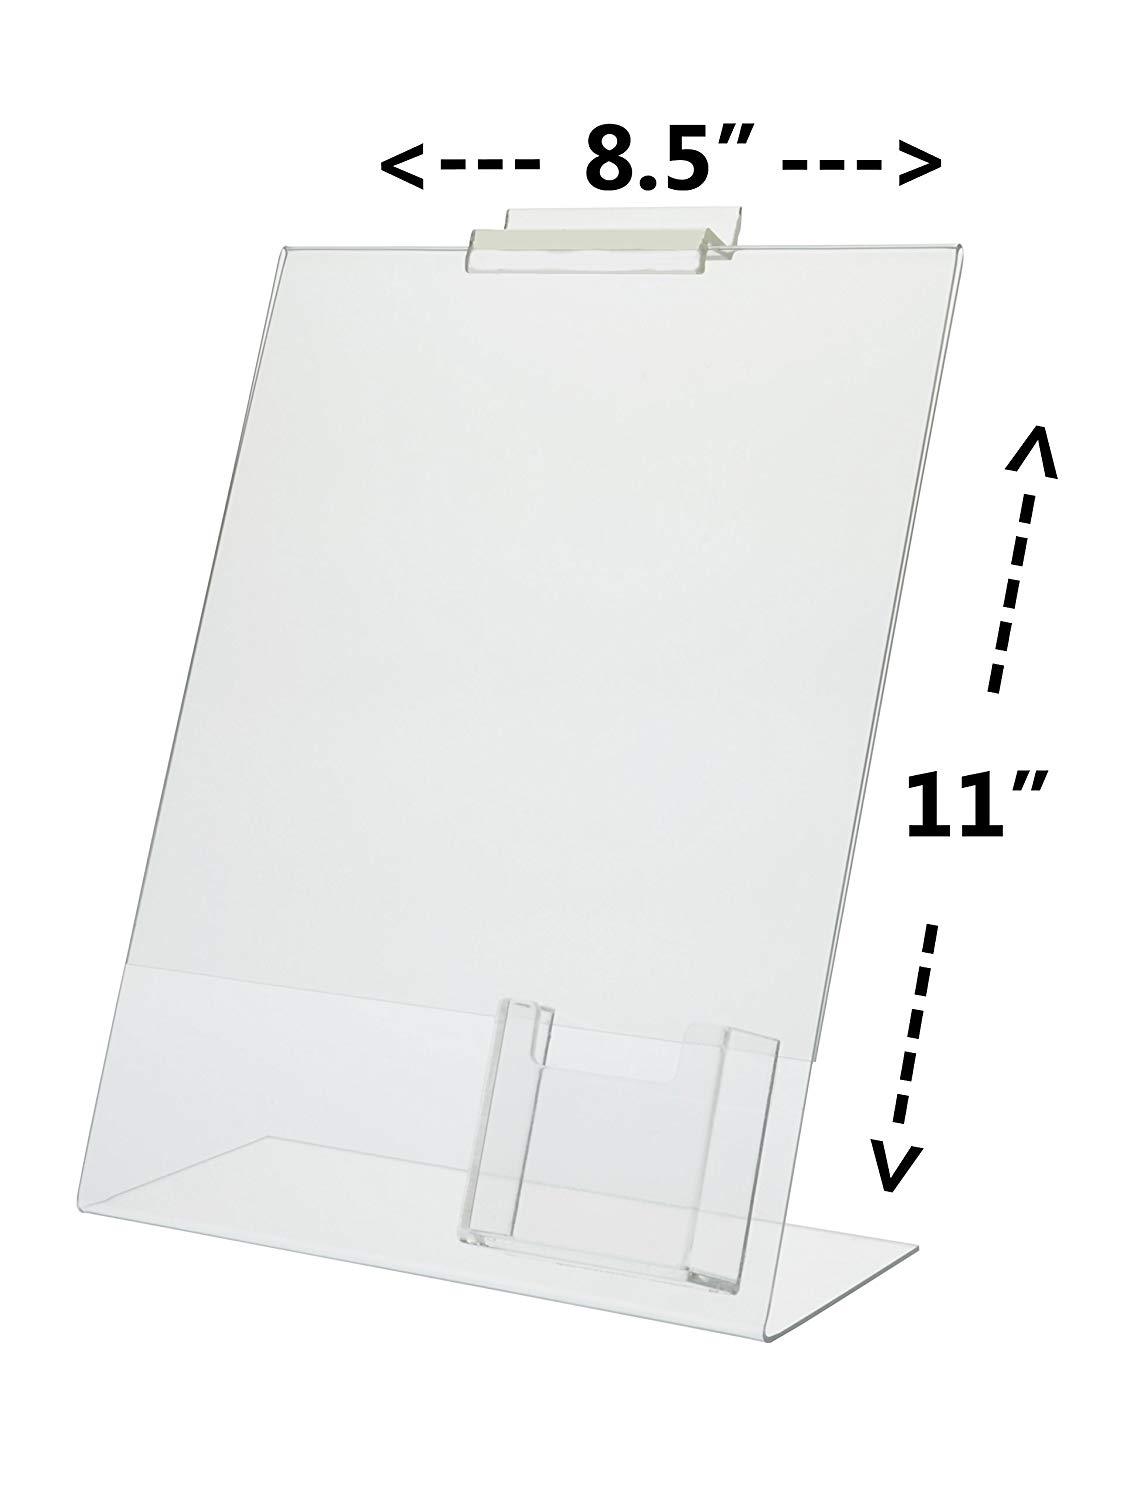 "Marketing Holders Lot of 6 Clear Acrylic 8.5"" x 11"" Slatwall Table Tent with a Vertical Business Card Holder"